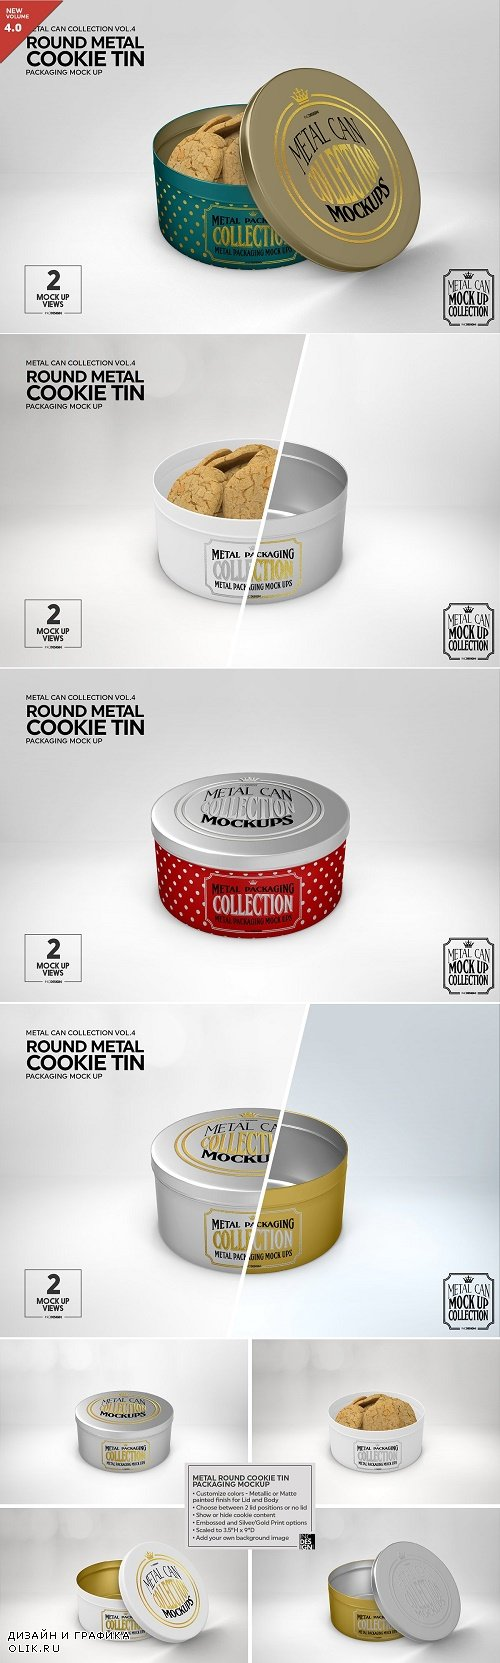 Metal Round Cookie Tin Mockup - 3882985